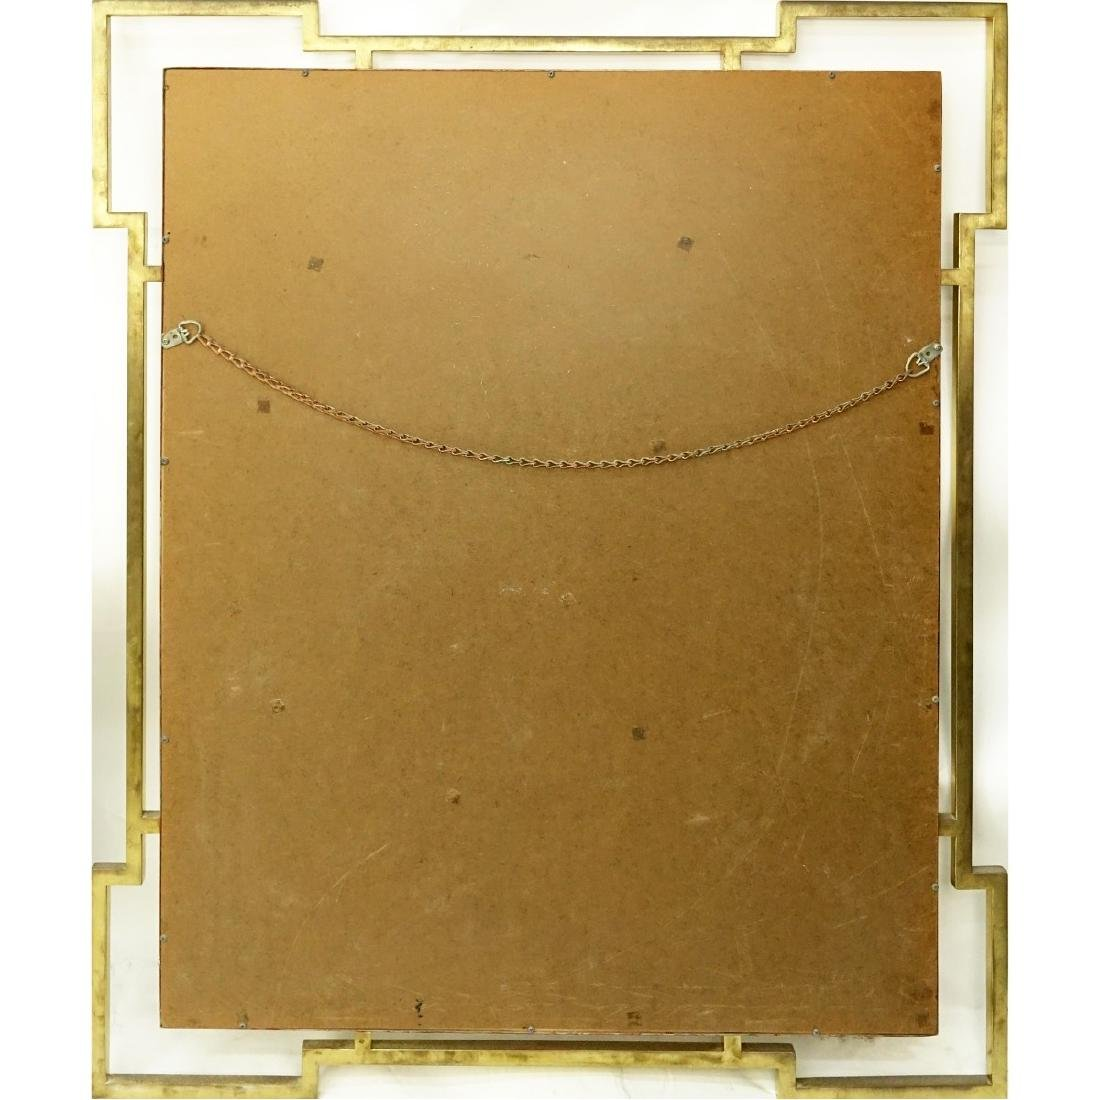 Mid 20th Century Brass and Faux Marble Mirror - 2